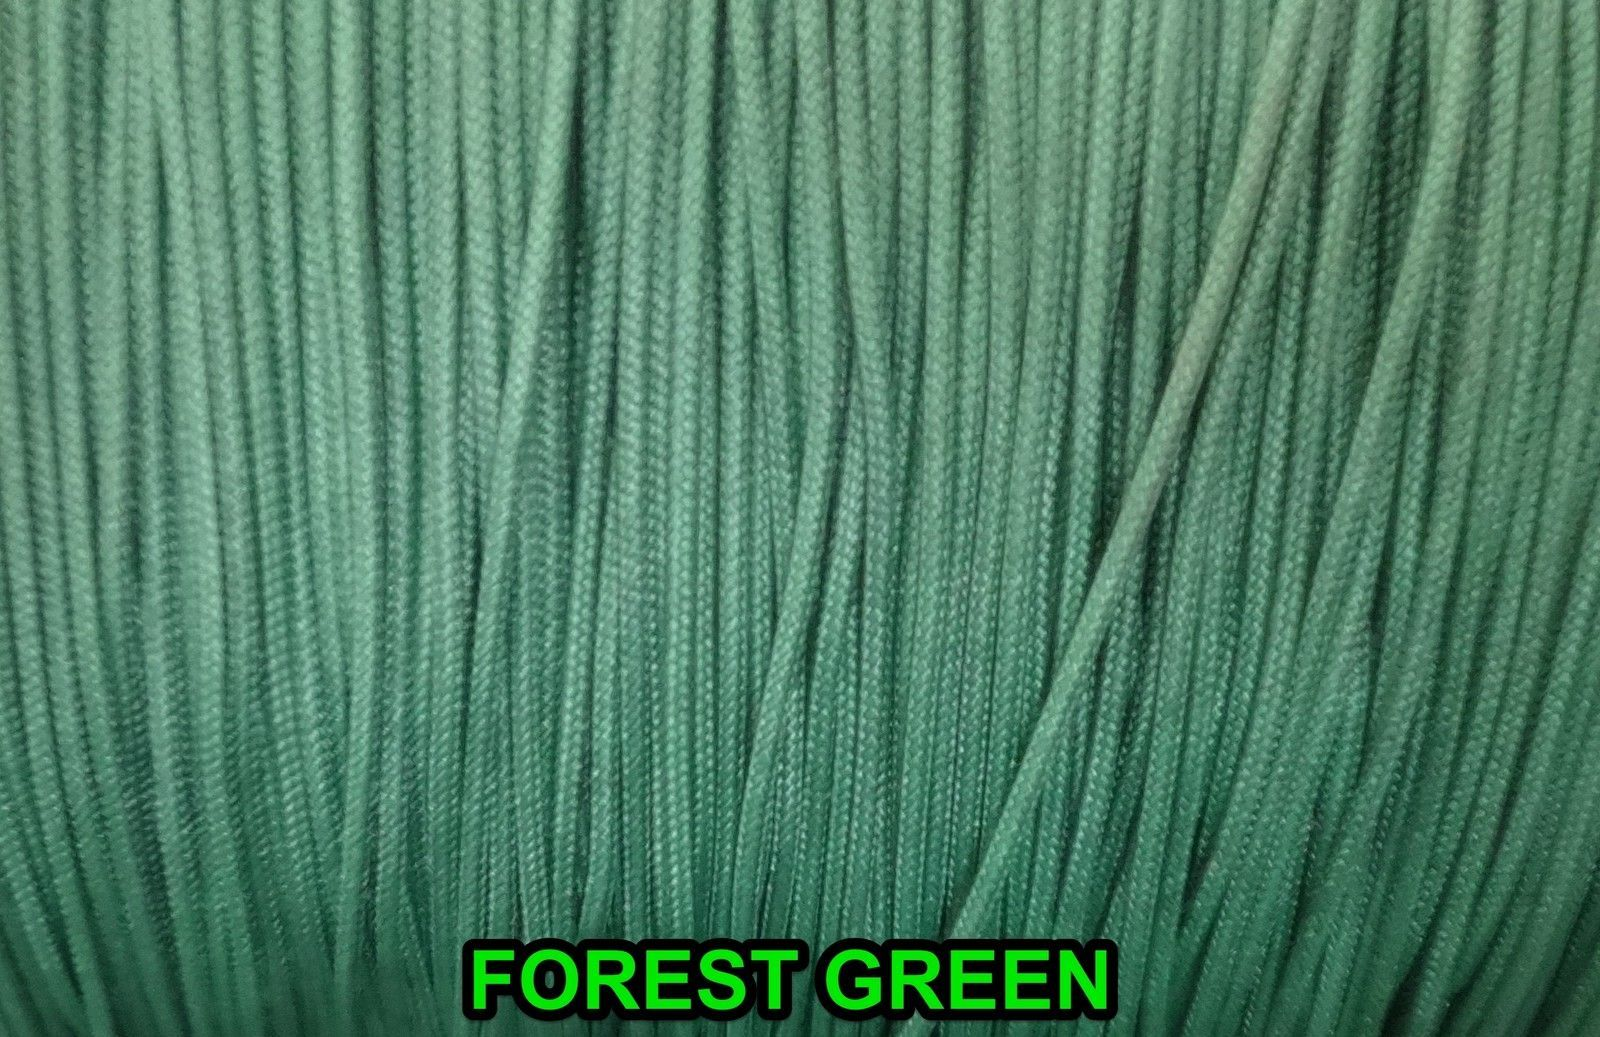 10 YARDS :1.8mm Forest Green  LIFT CORD for Blinds, Roman Shades and More